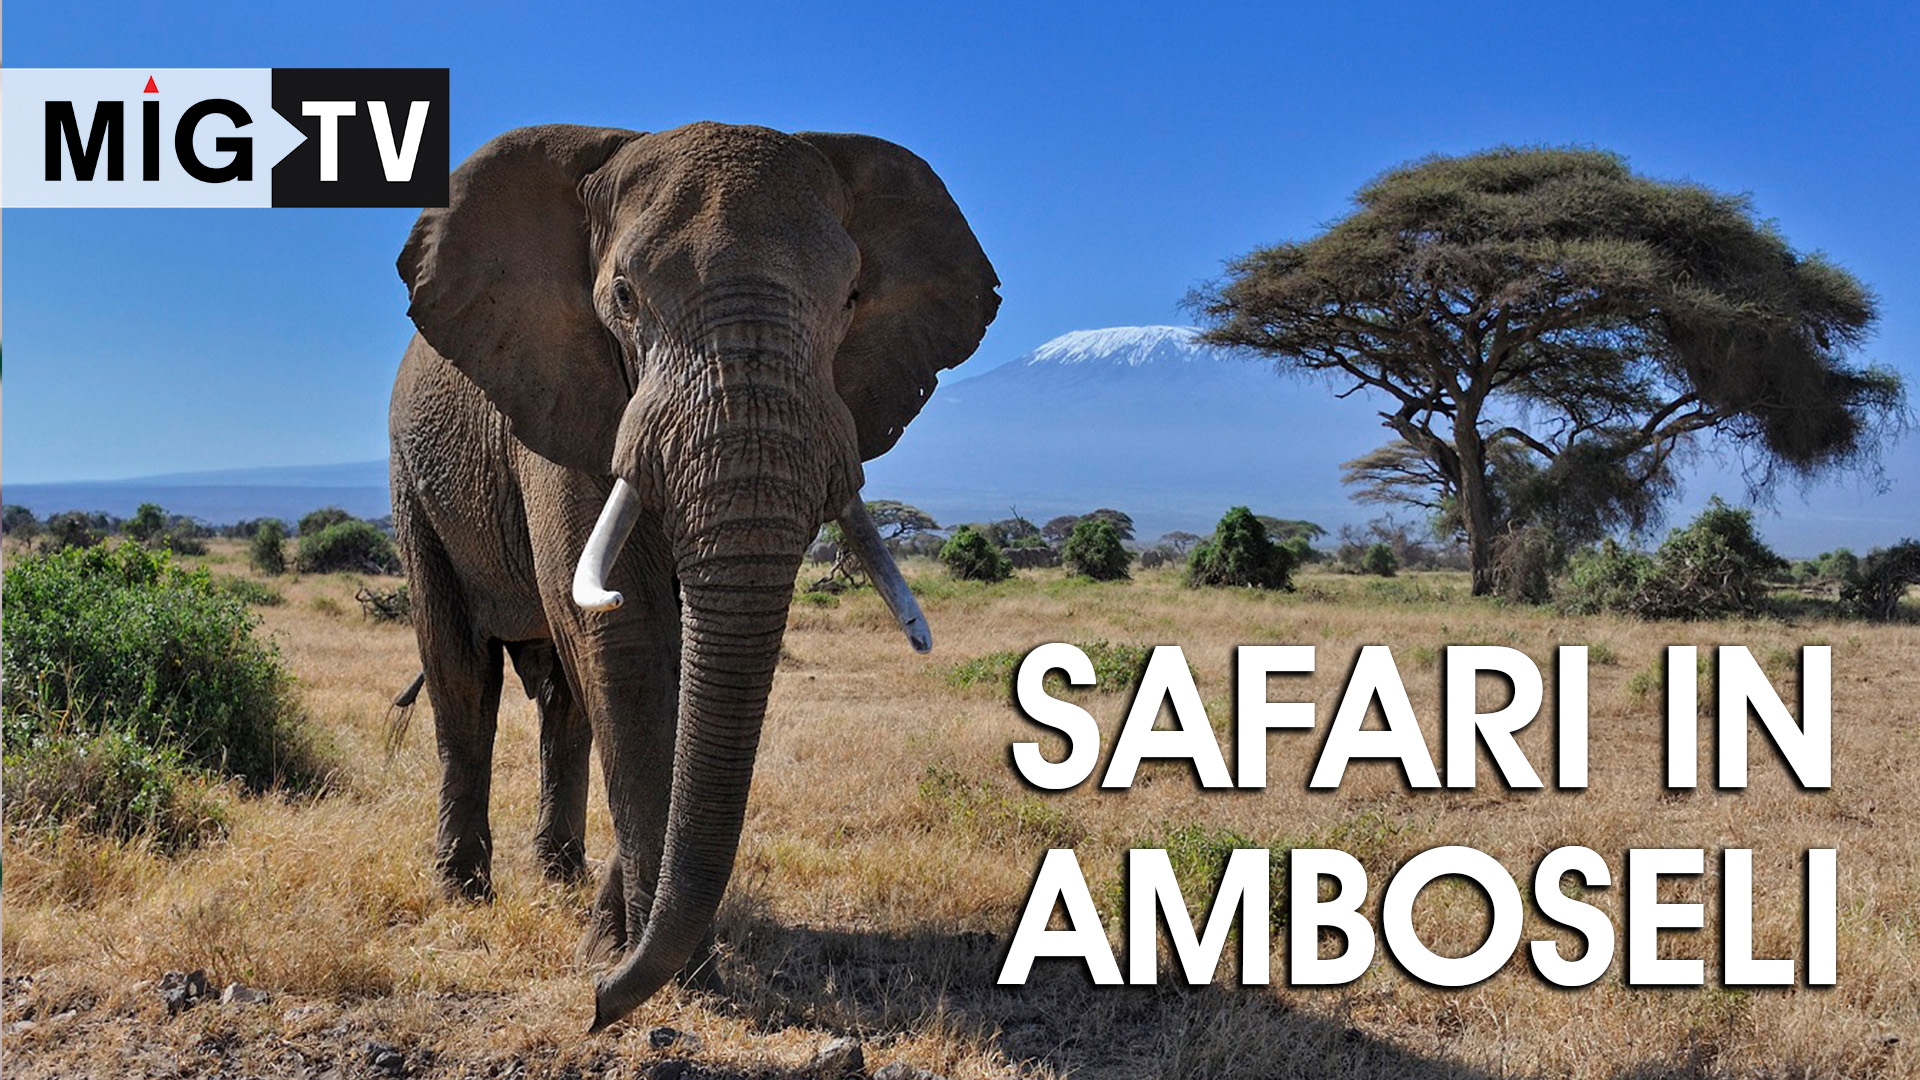 One day safari in Amboseli